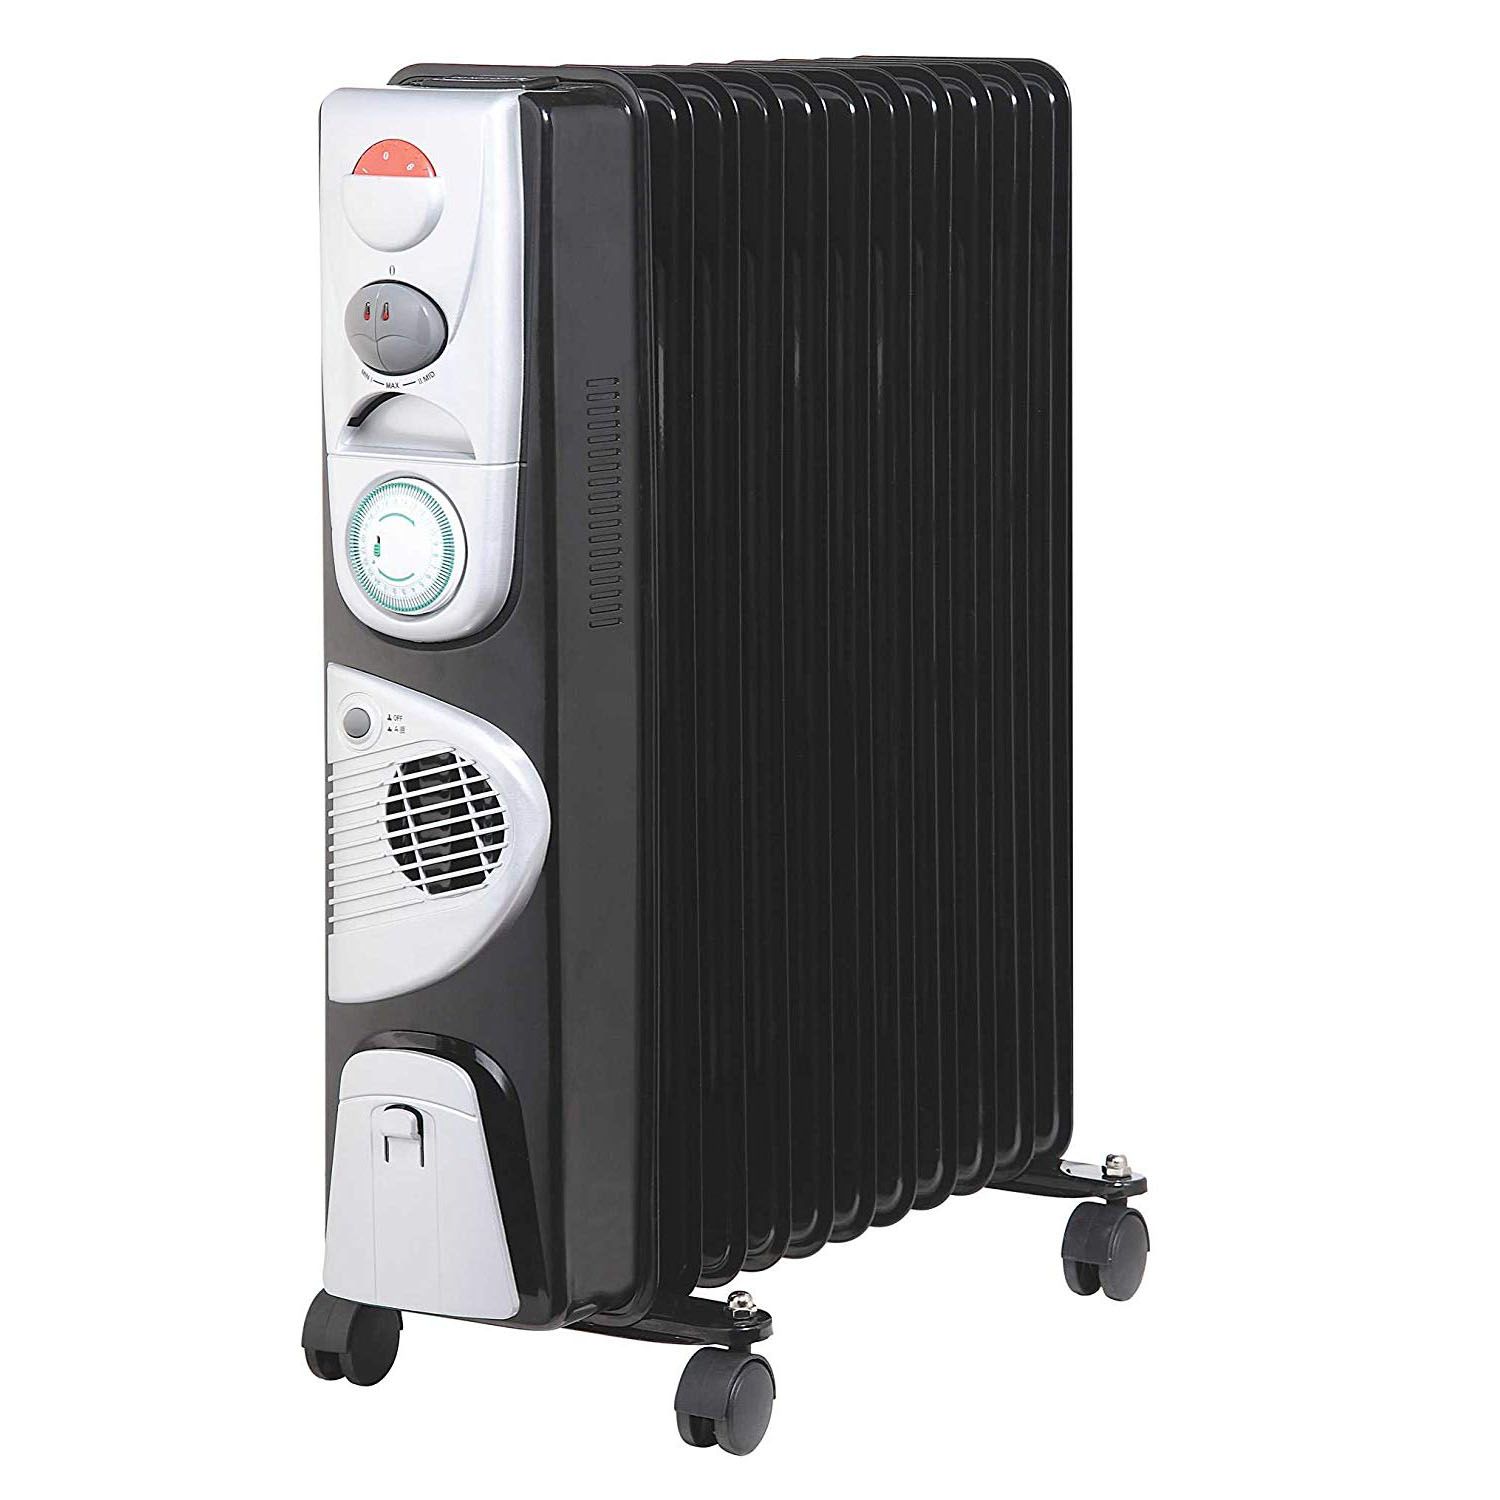 Kingavon 2.5kw 11 Fin Slimline Oil Filled Radiator